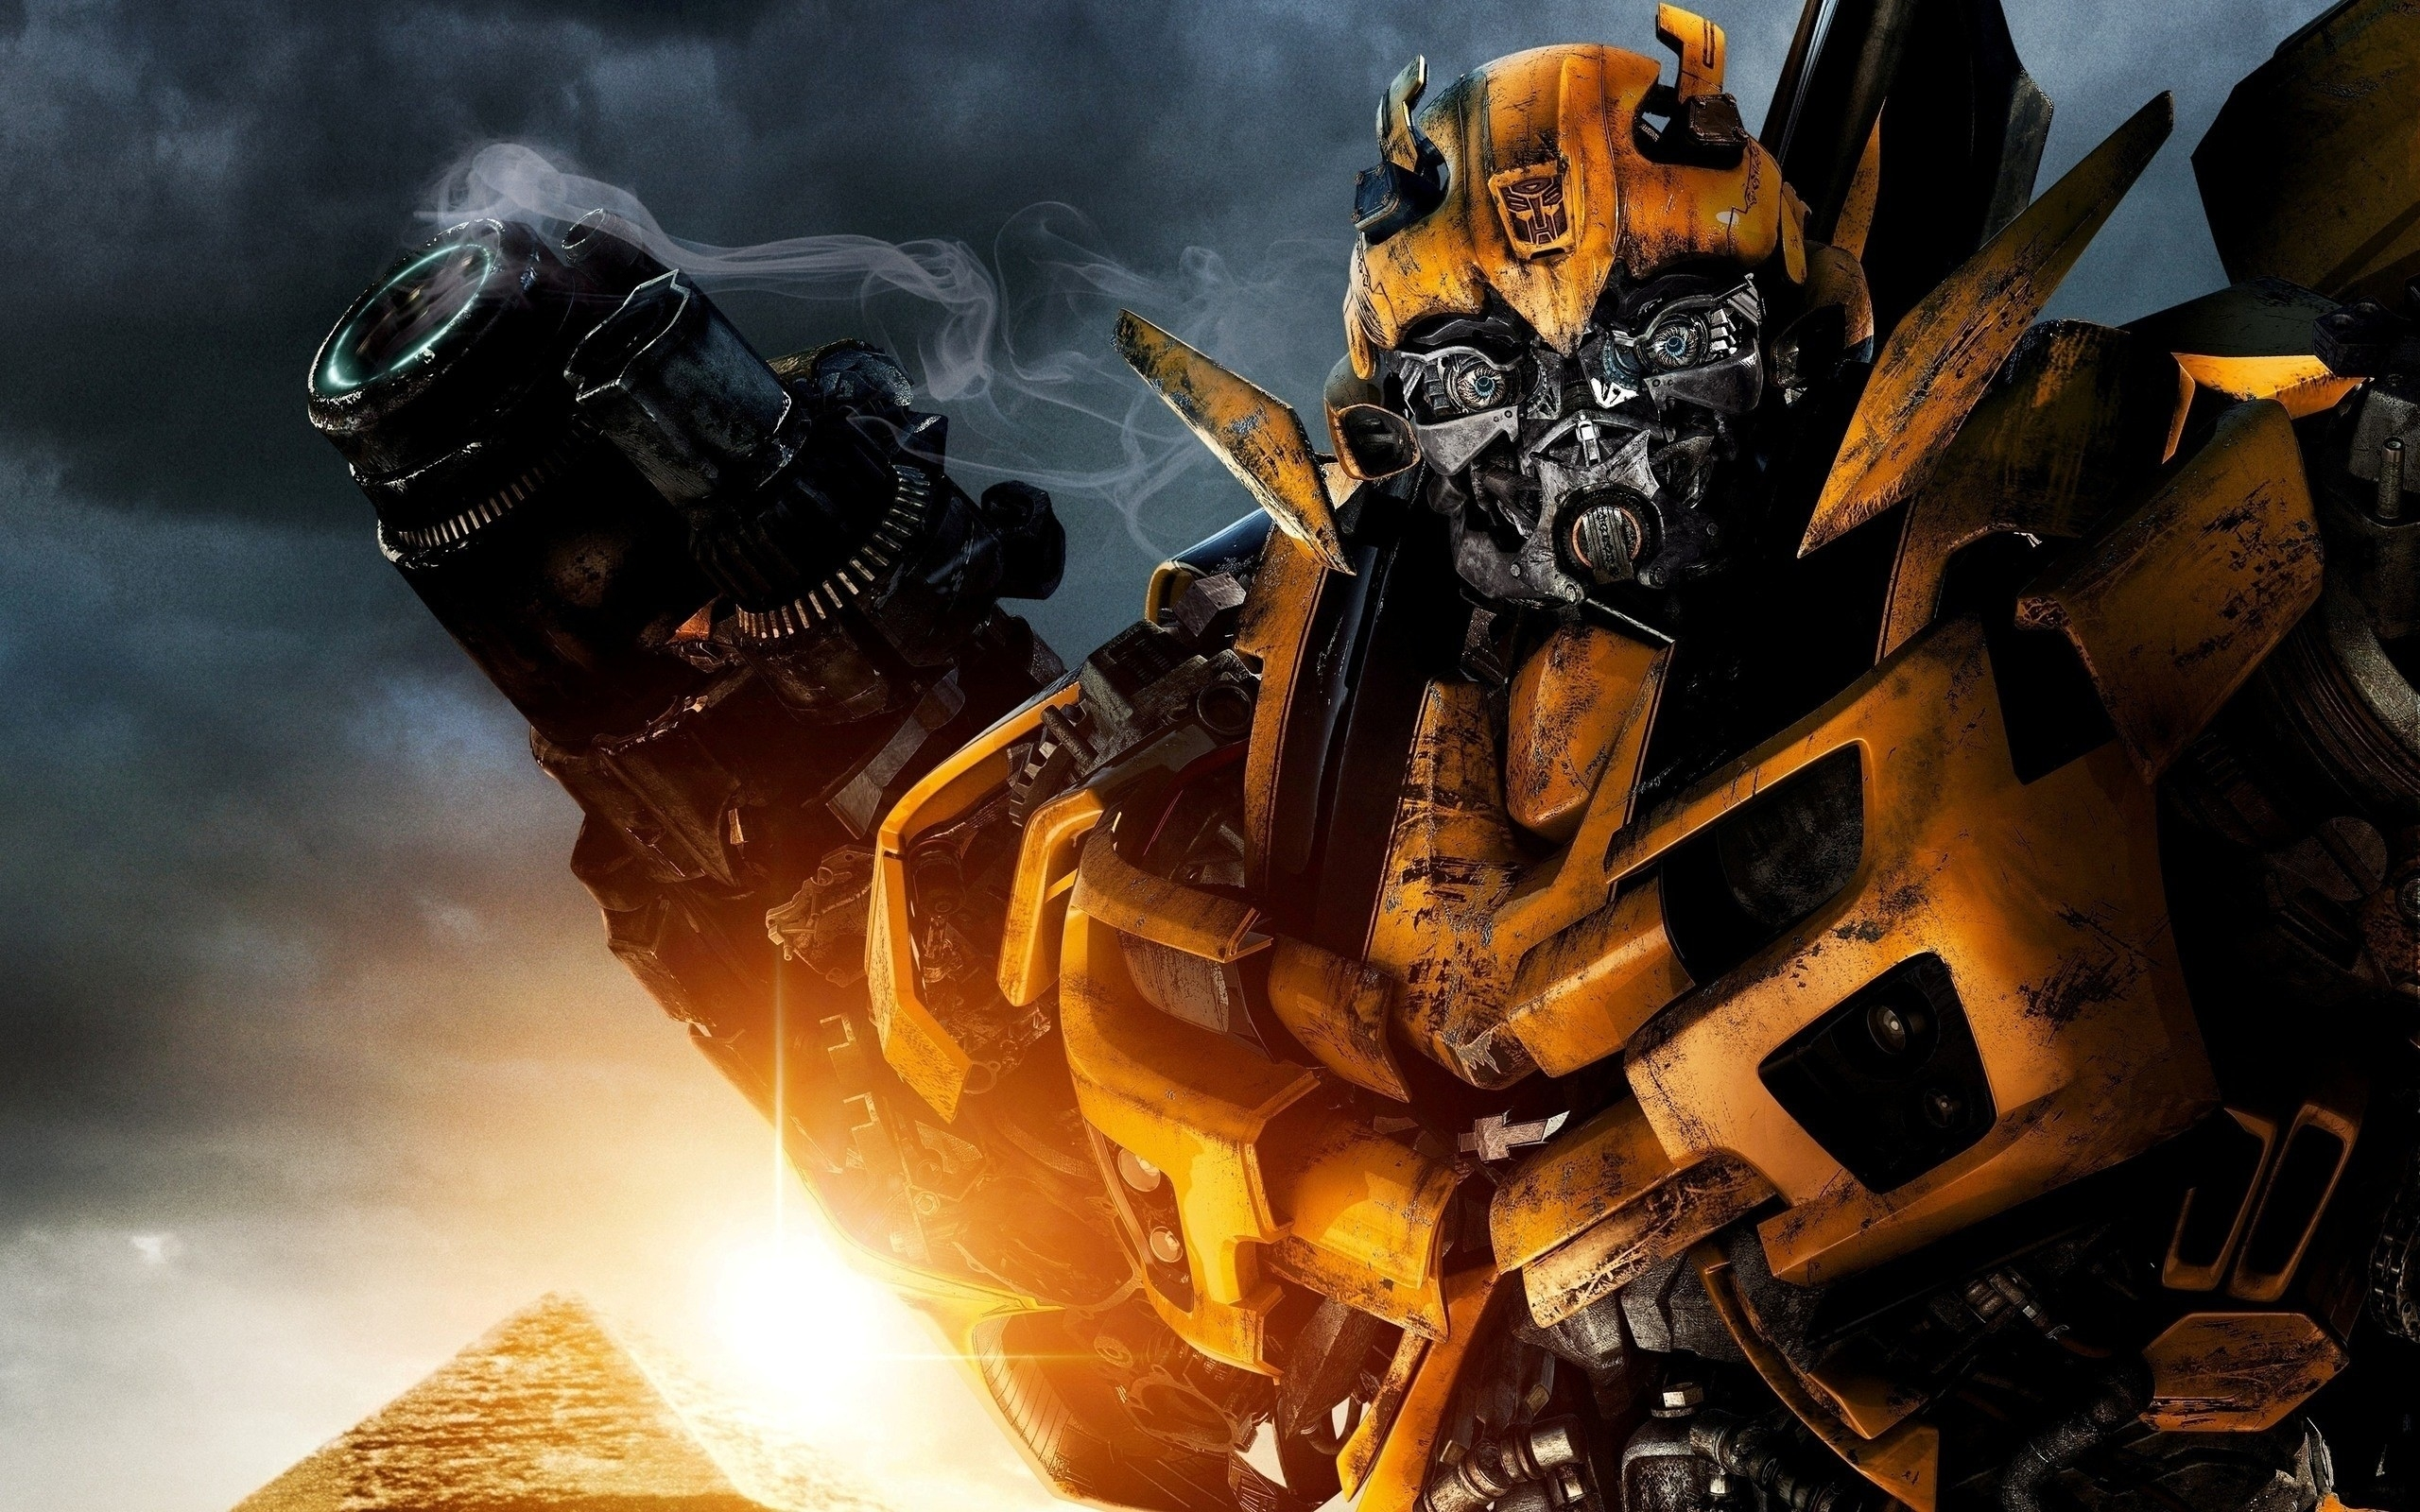 Download mobile wallpaper Transformers, Cinema for free.